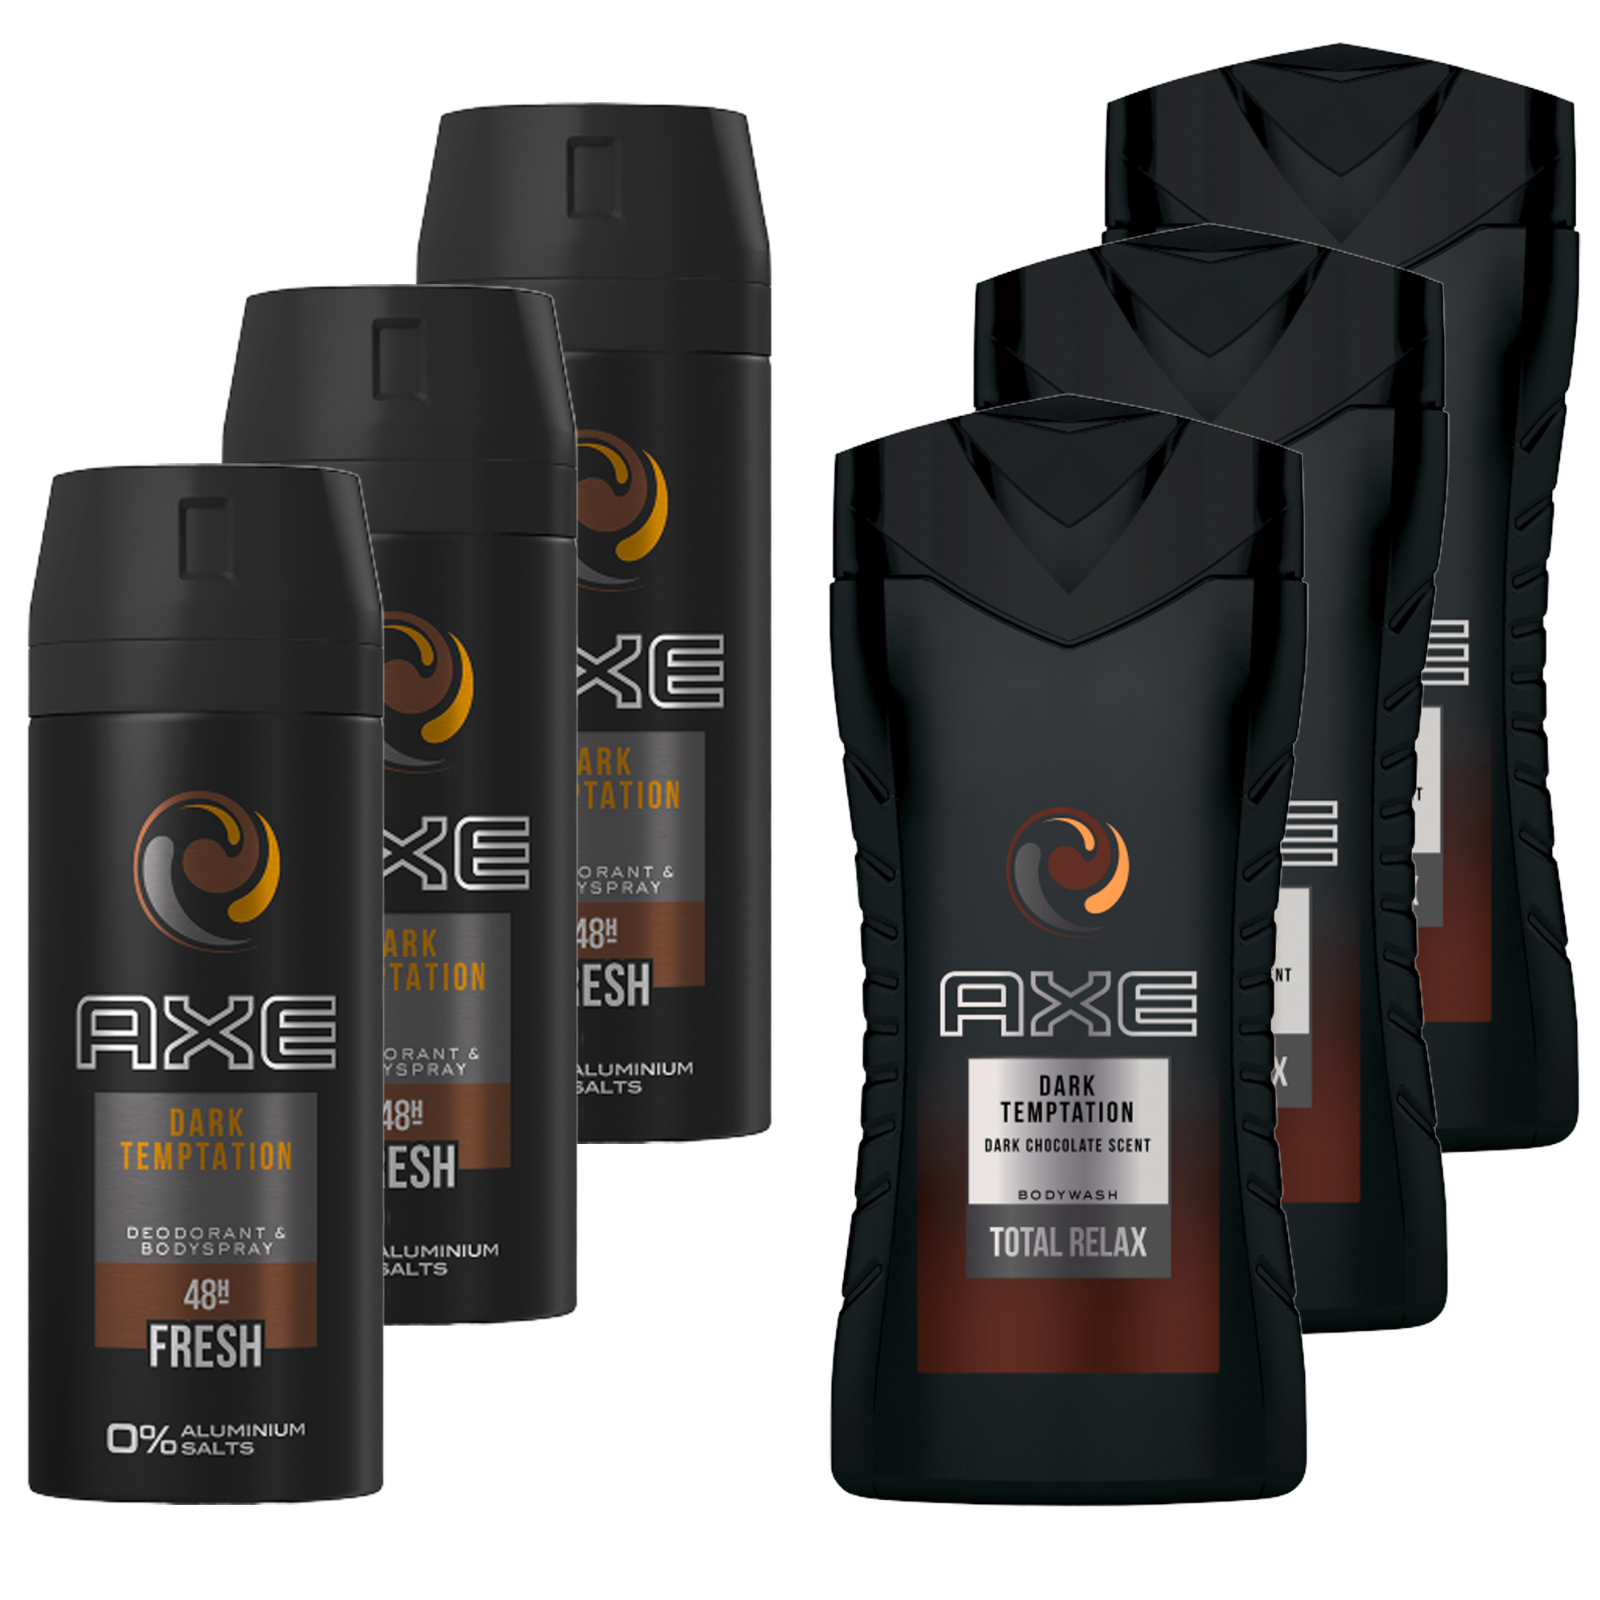 AXE Dark Temptation Duschgel Deo 3 x Showergel  3 x Deospray Deodorant Bodyspray